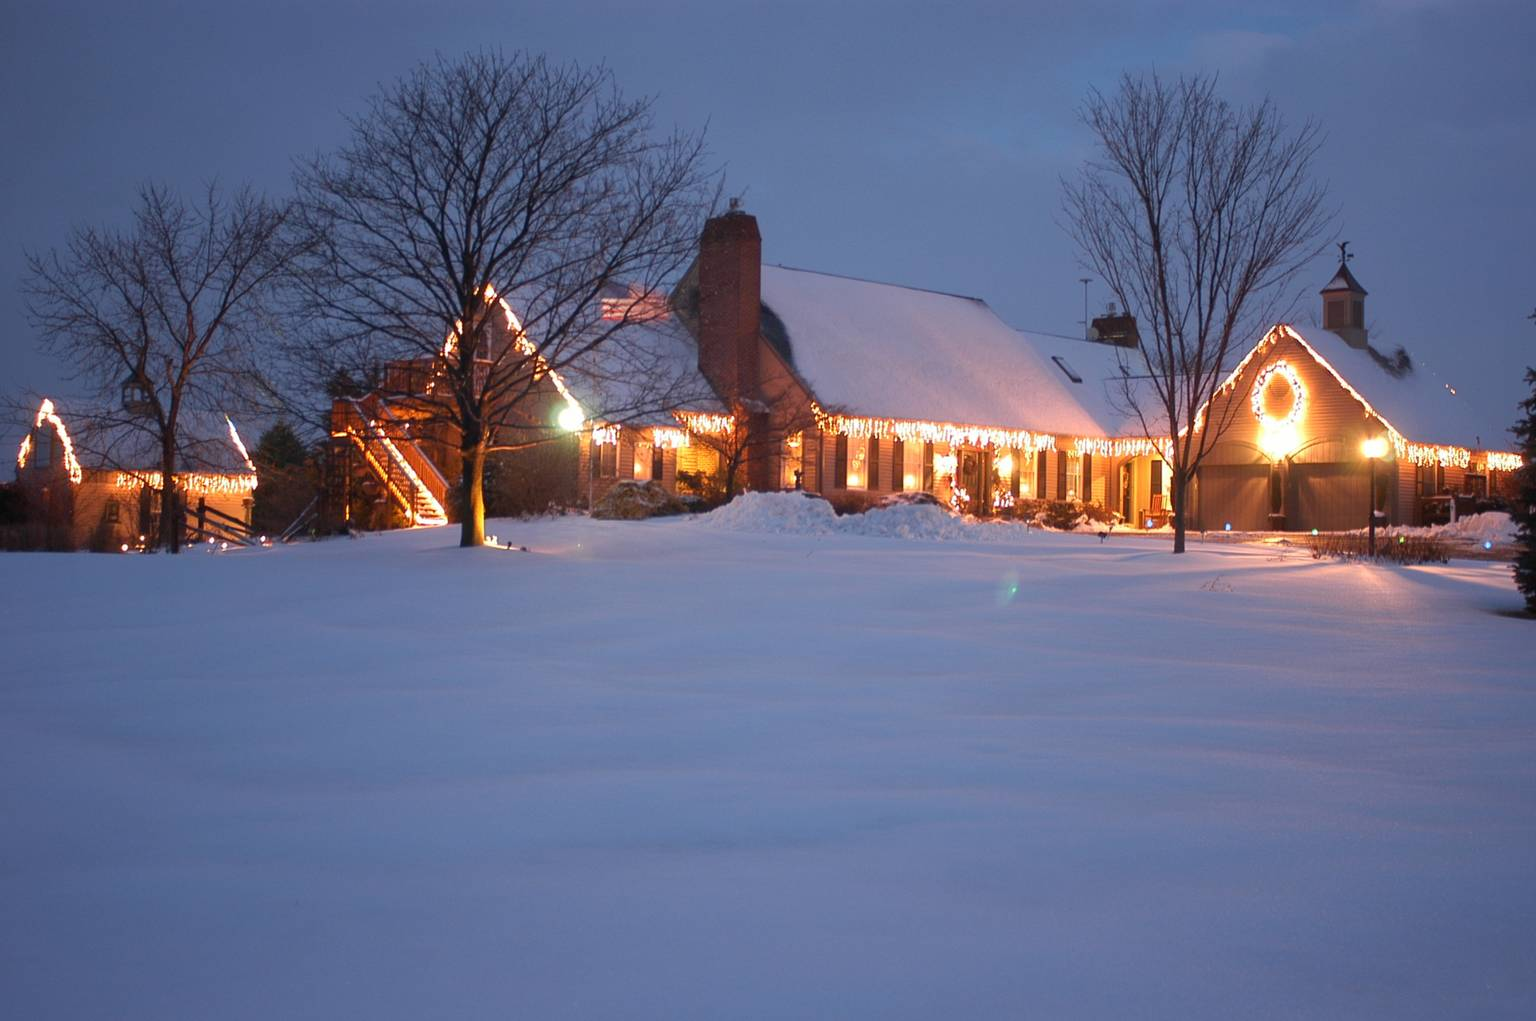 Annville Bed and Breakfast